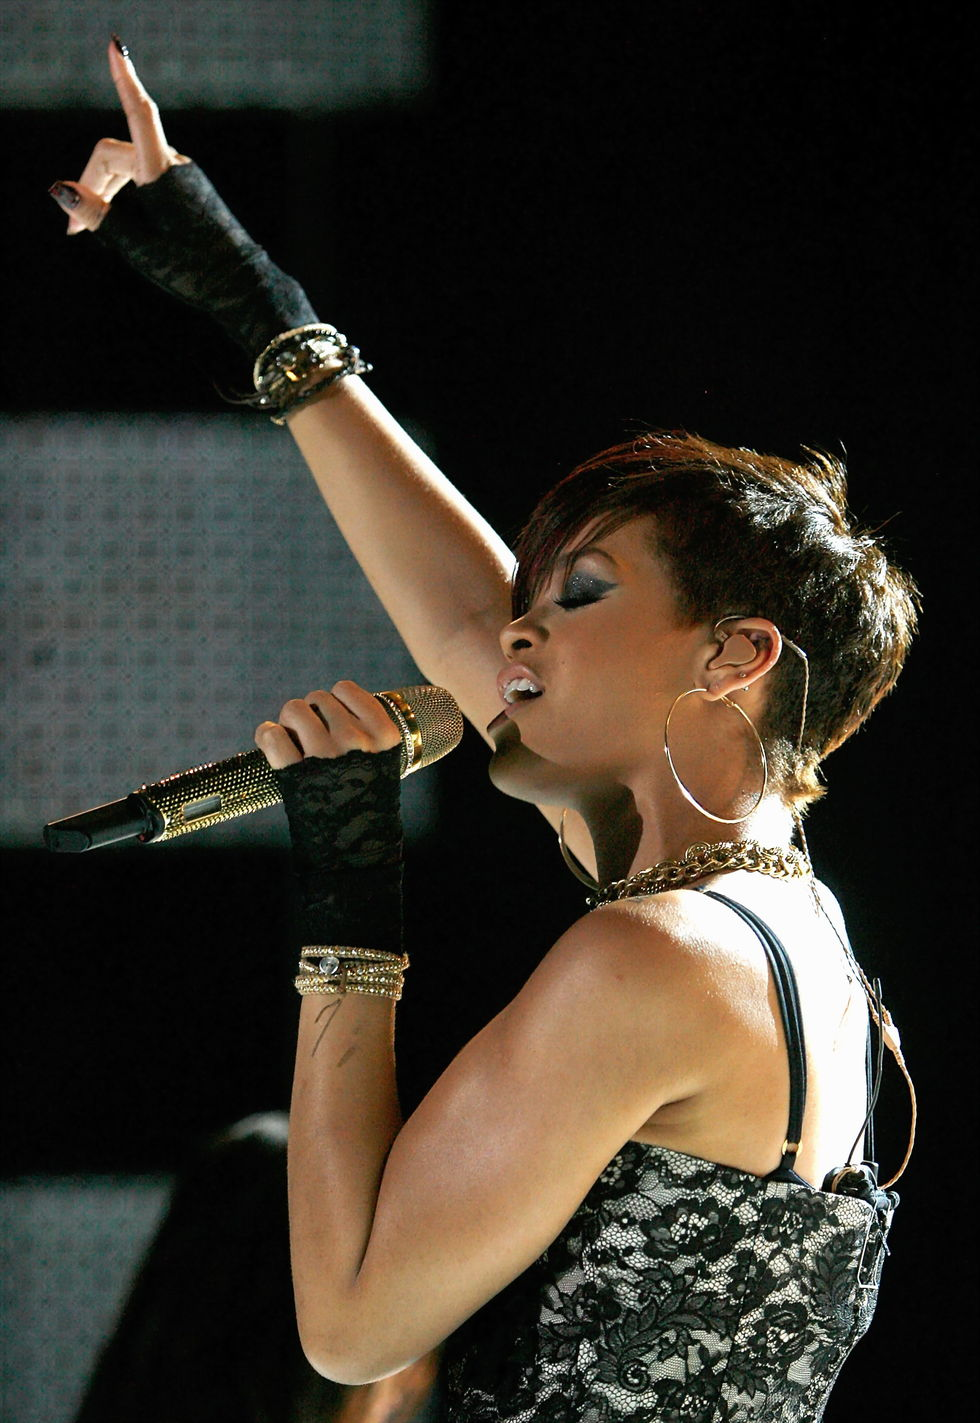 rihanna-performs-at-the-2008-essence-music-festival-in-new-orleans-09